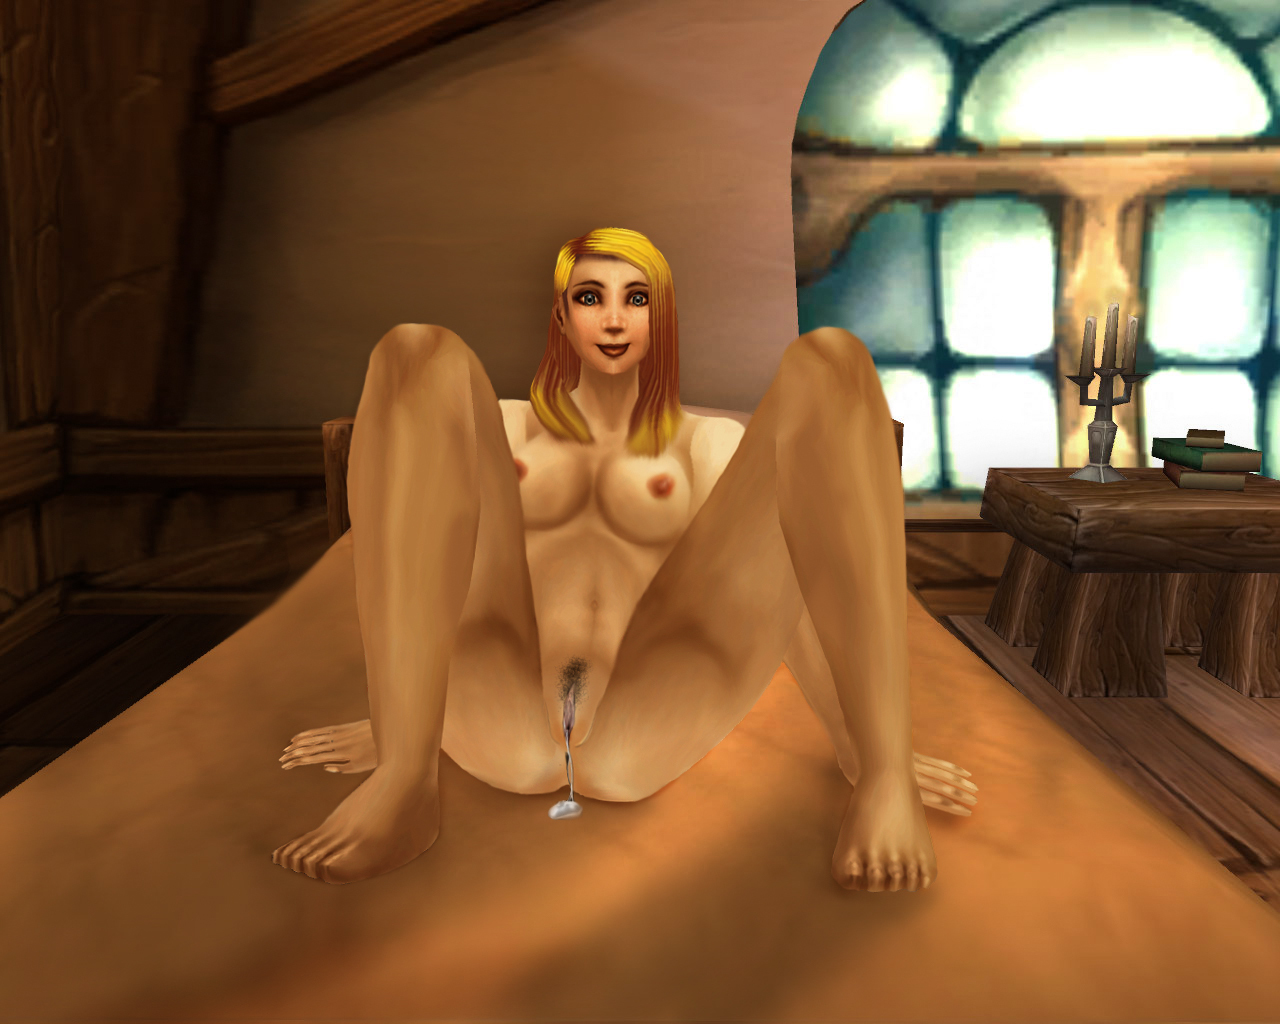 World of porncraft jizzart pic naked scene